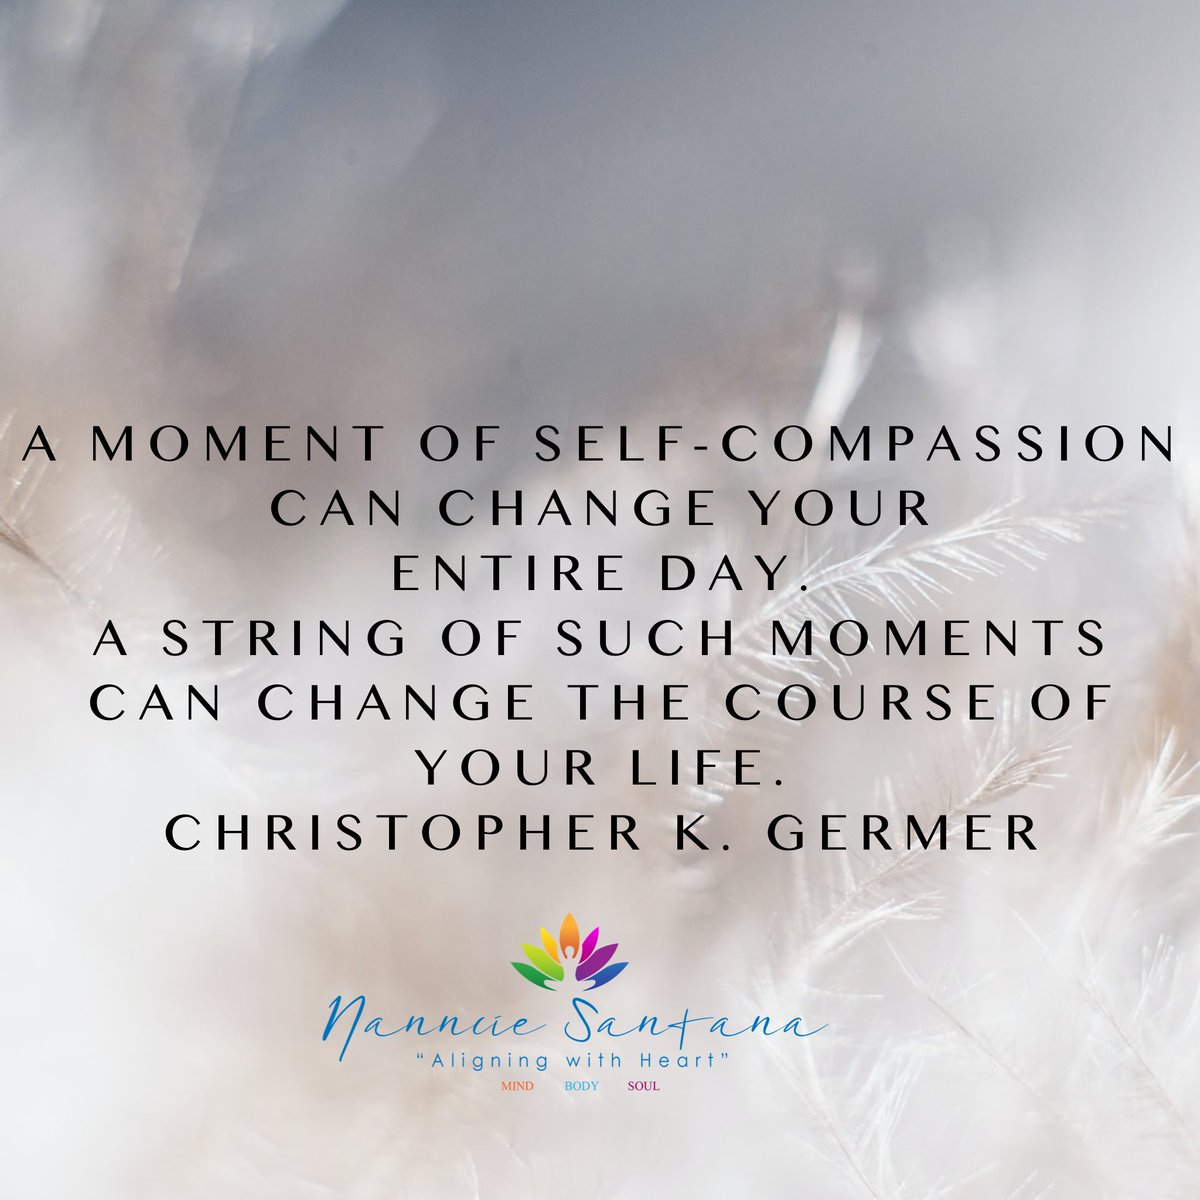 #tuesdayvibe #TuesdayFeeling #TuesNews #2021goals #selfcompassion #selfcare #selfworth  #nannciesantana